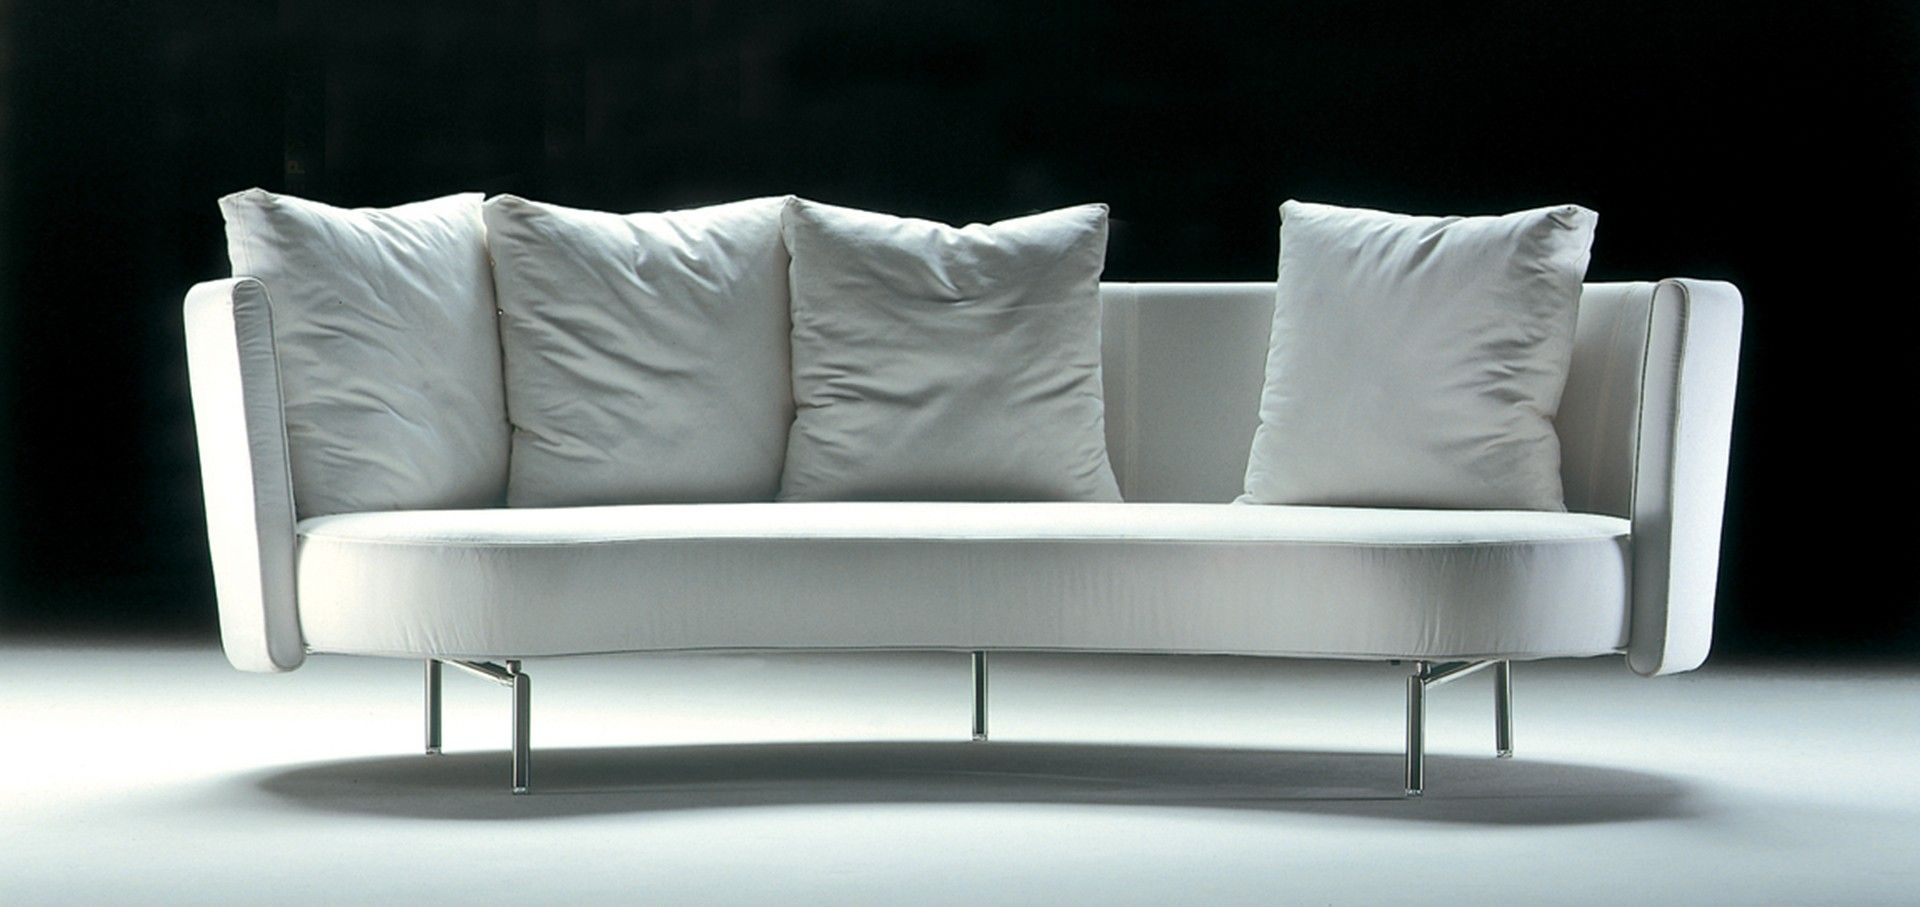 Sofa Phil Flexform Vitoitalia Italian Furniture Modern Furniture Italian Furniture